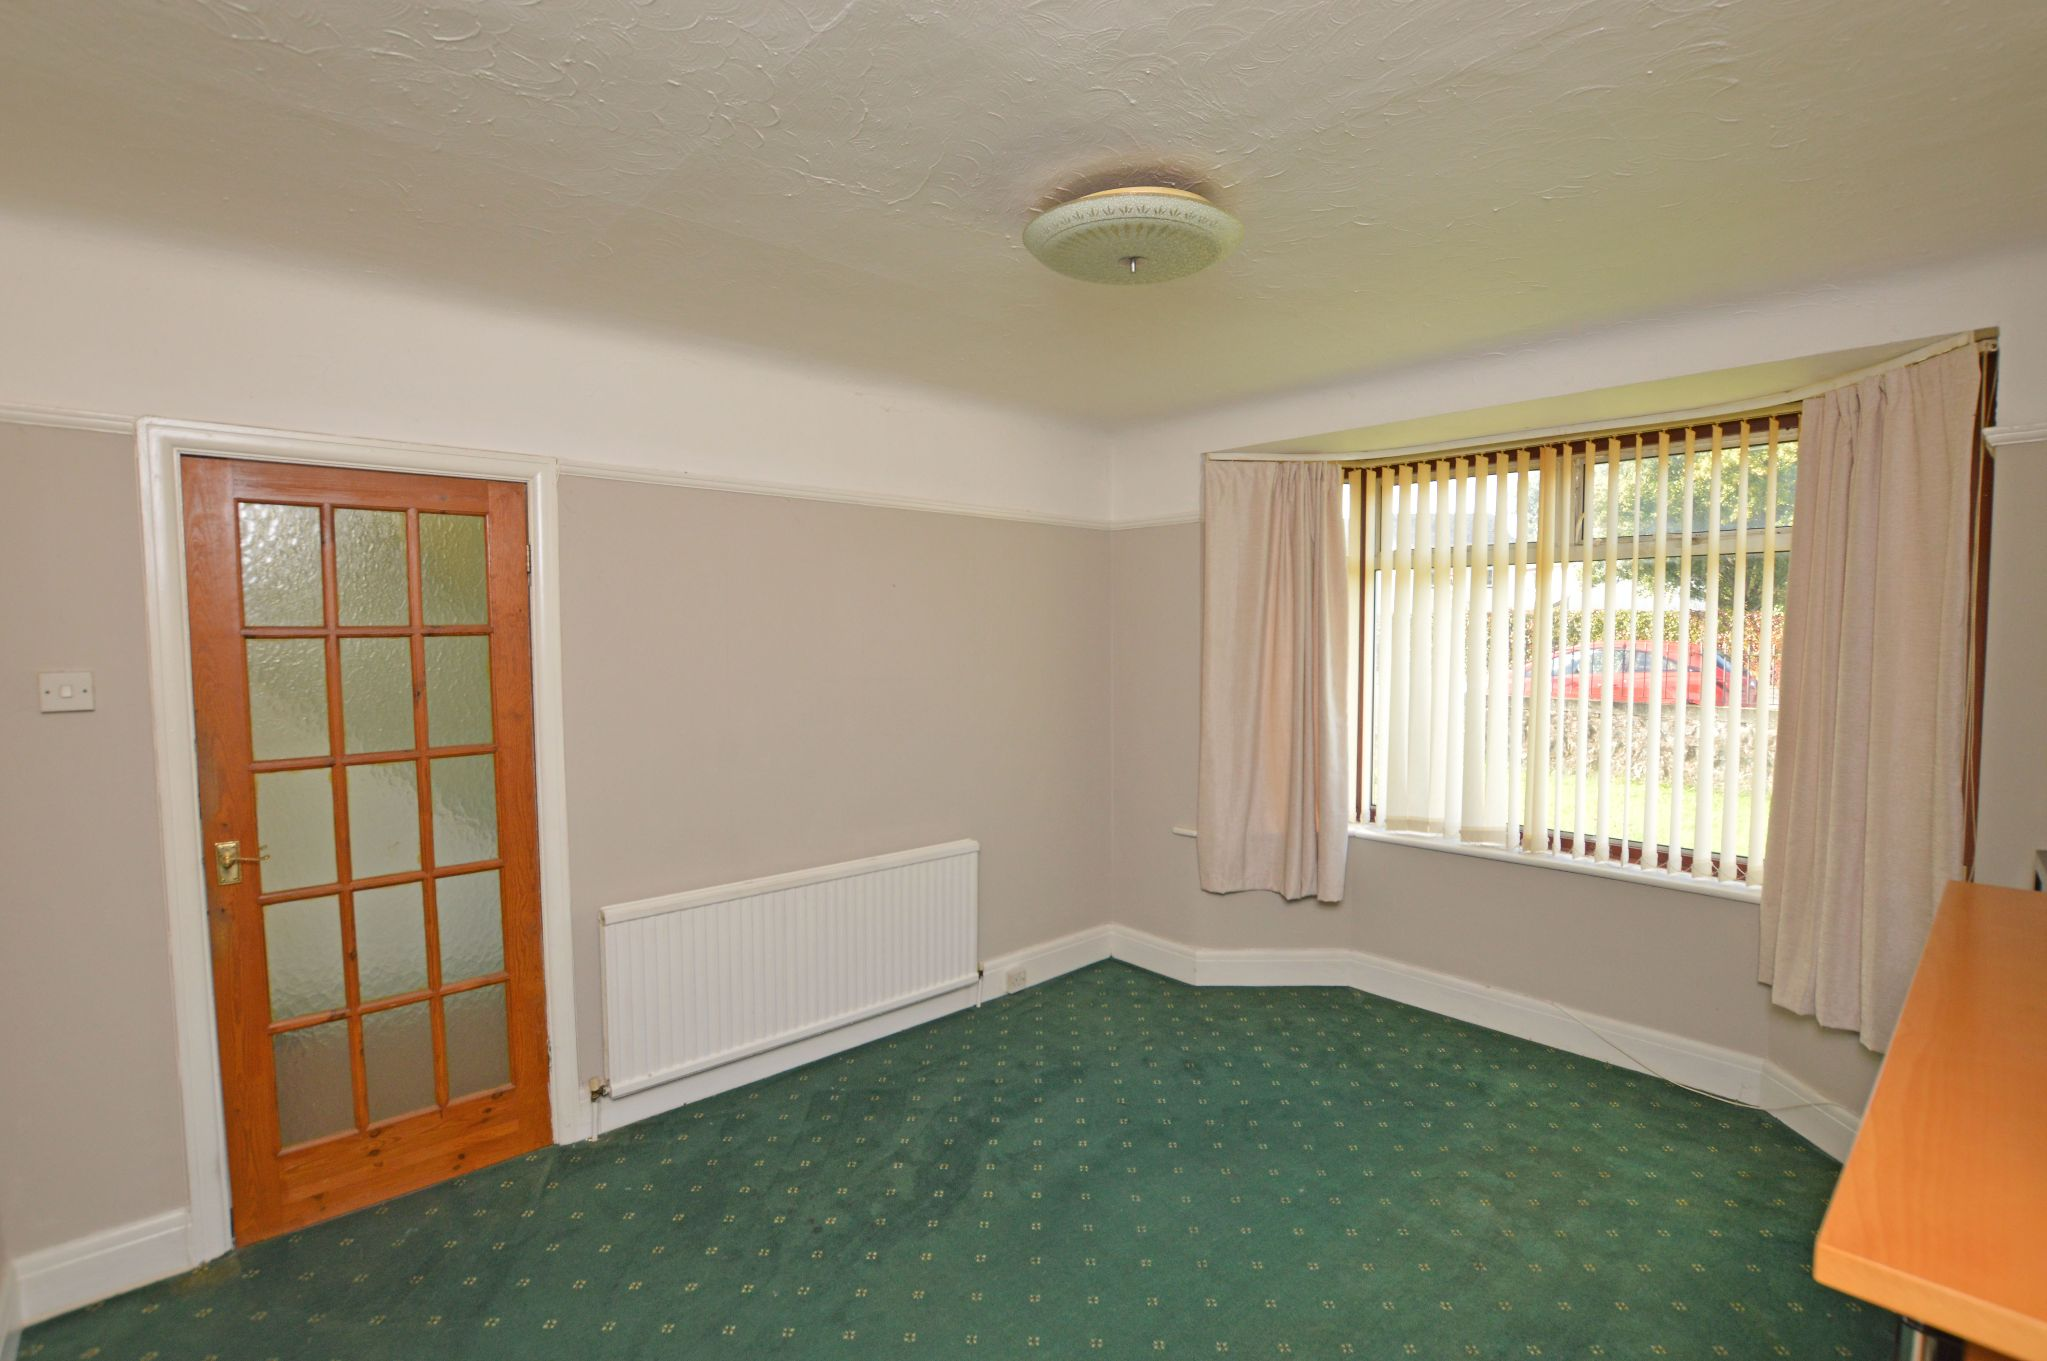 3 bedroom semi-detached house For Sale in Abergele - Lounge View 2